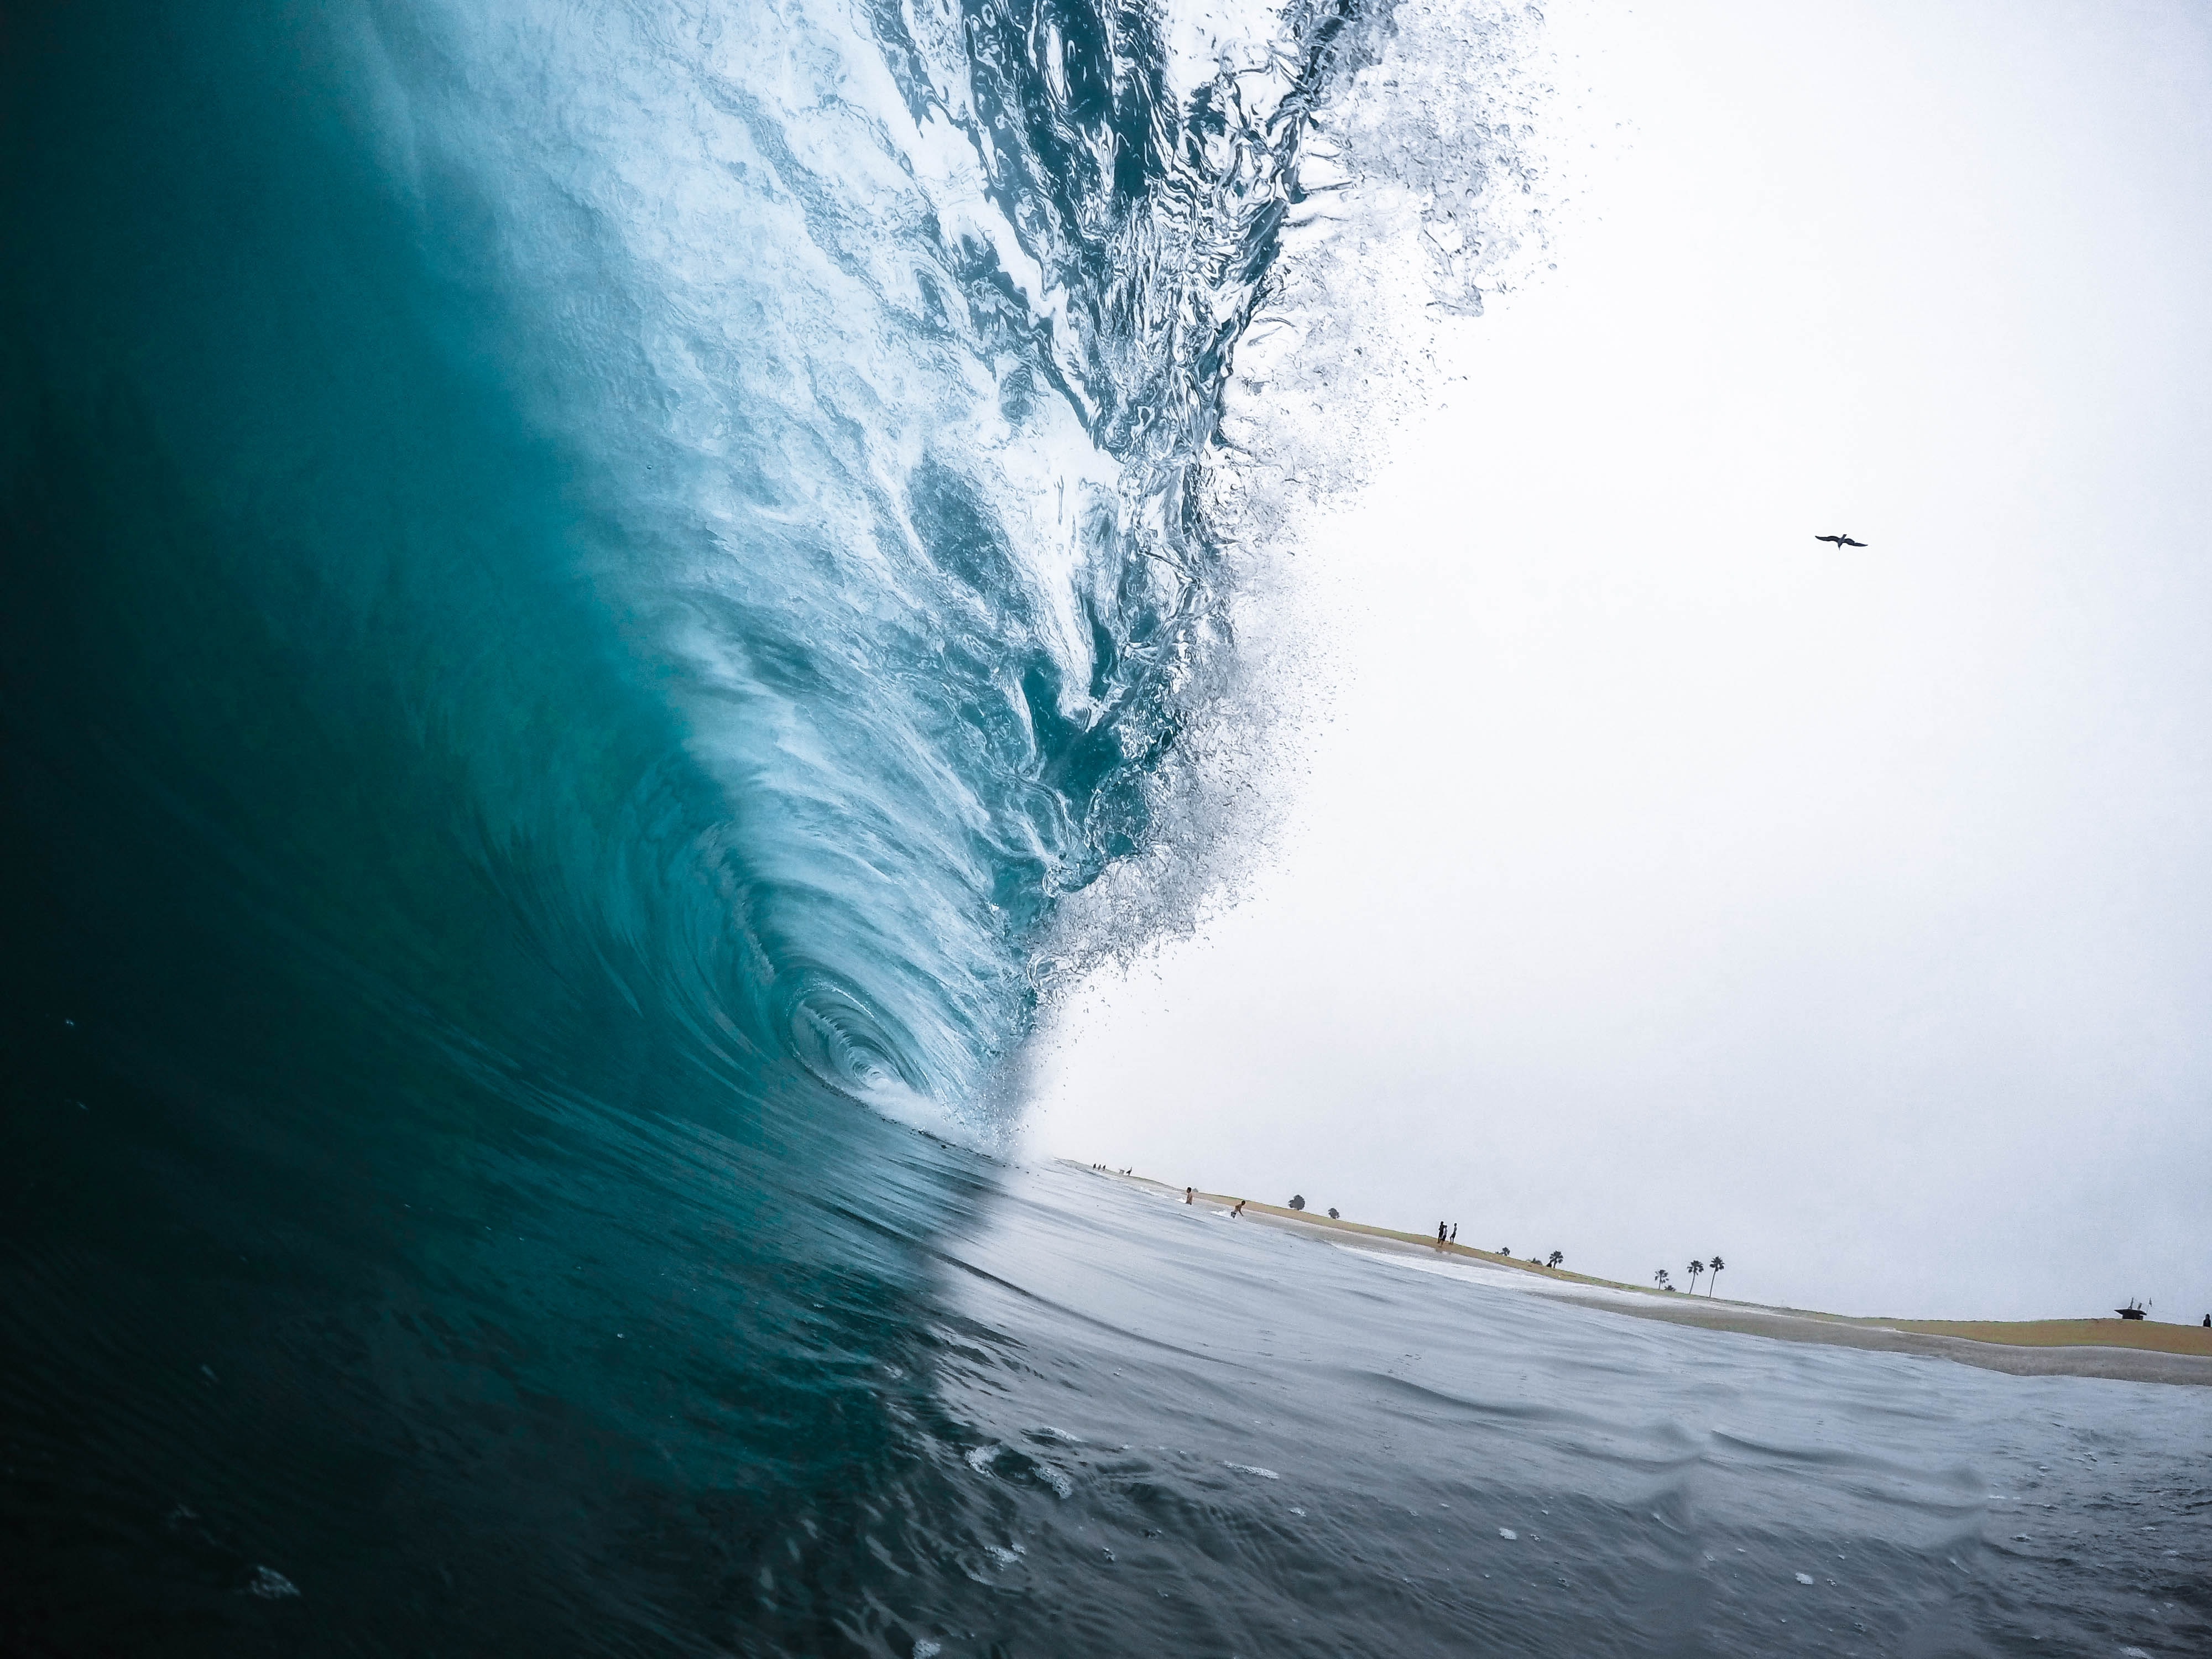 View of the surf wave at Newport Beach